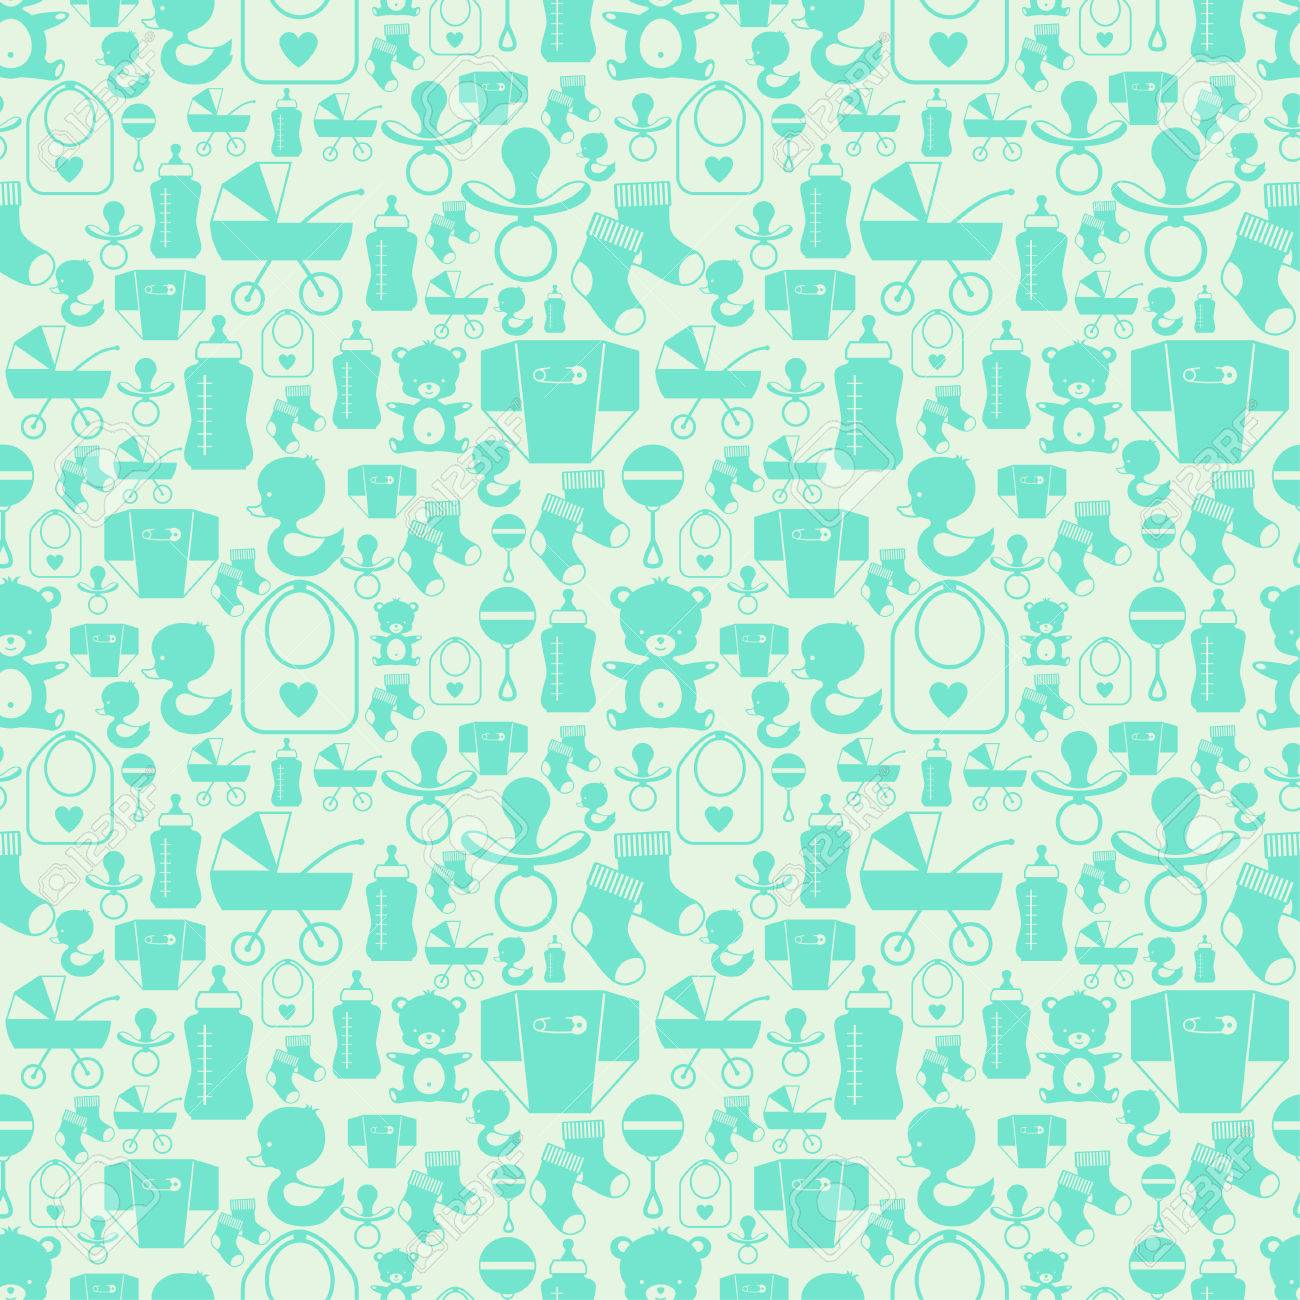 Seamless pattern with newborn baby icons. - 22895937